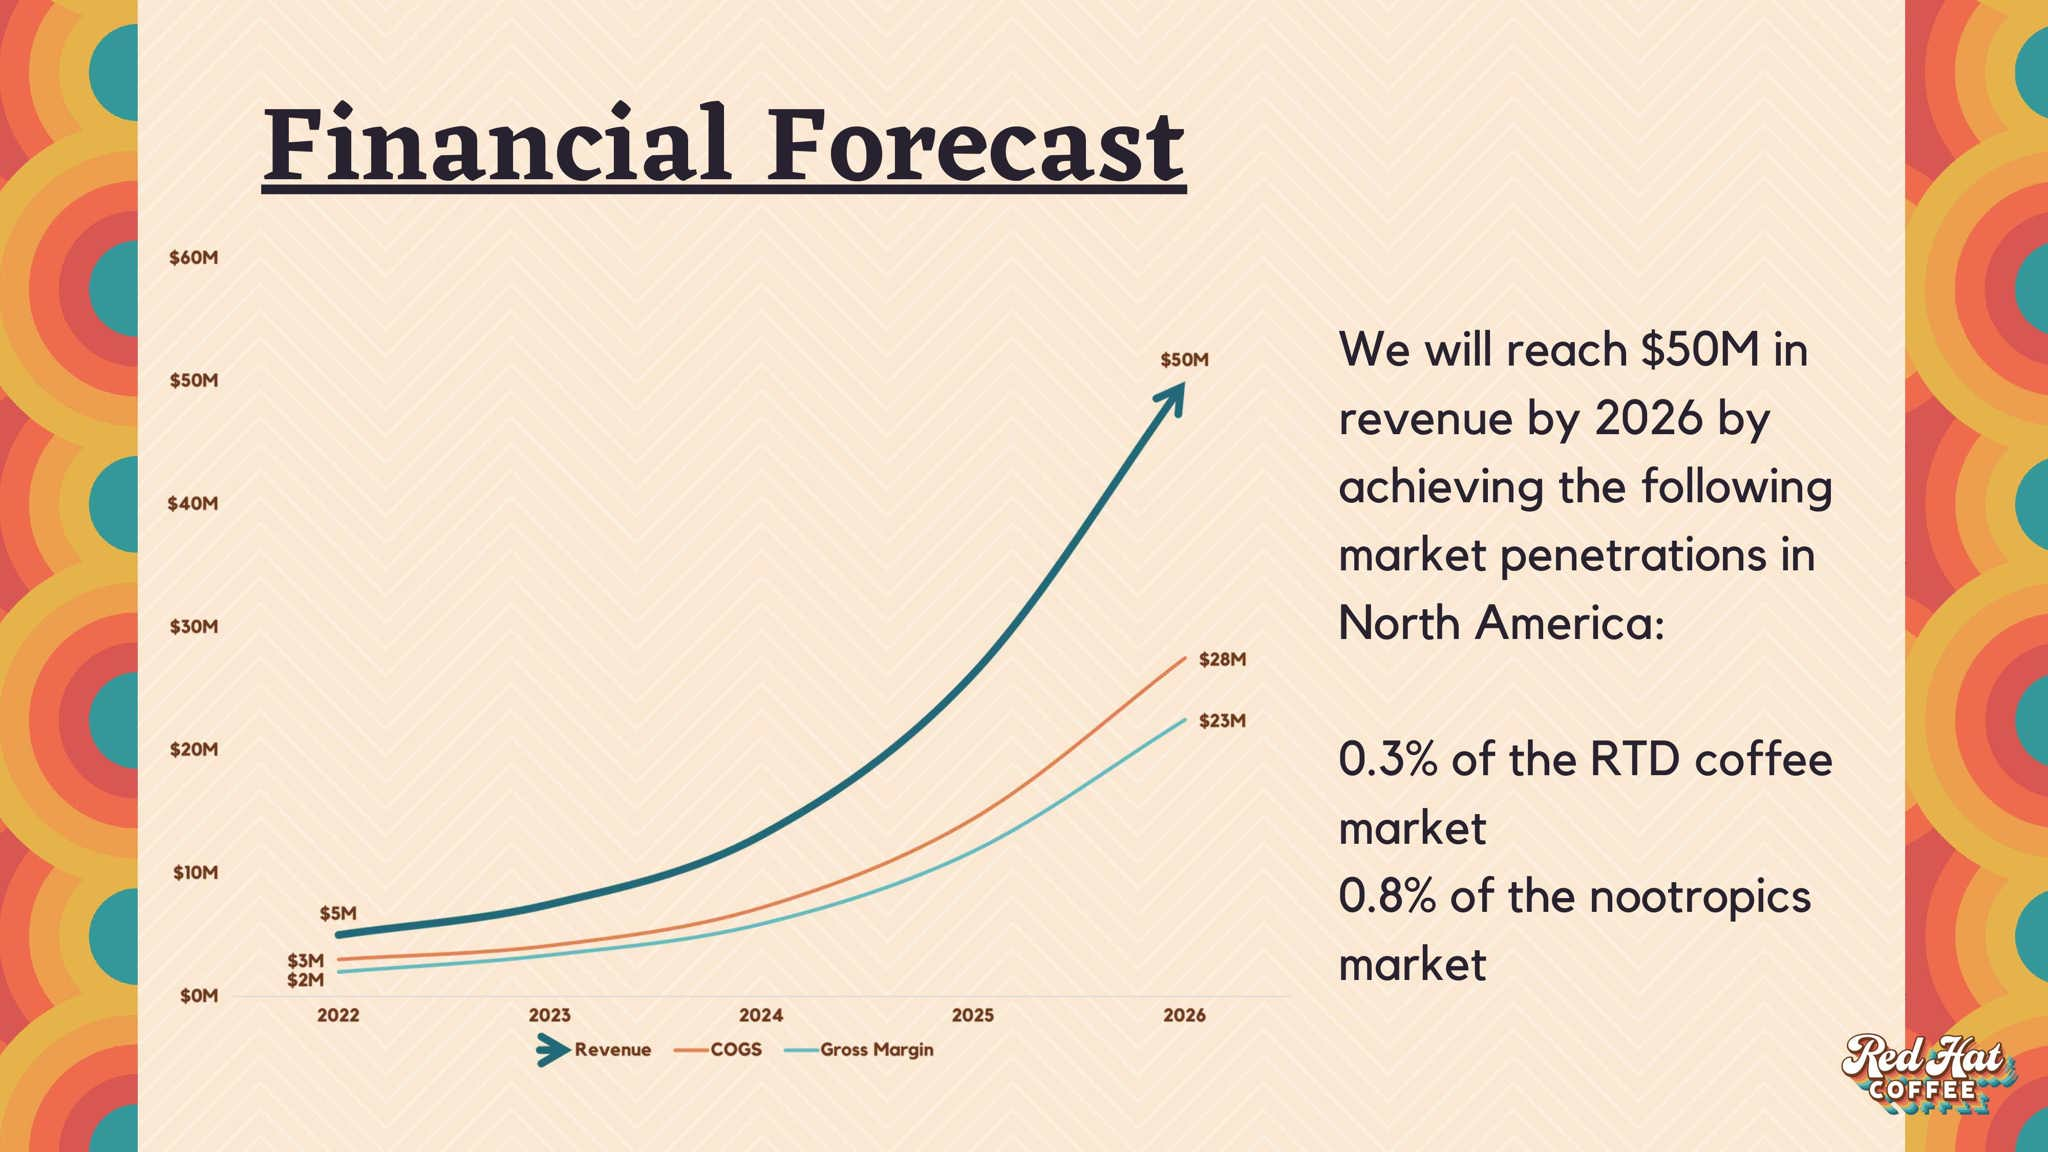 Financial Forecast of $50 million in revenue by 2026. RTD coffee and nootropics markets.